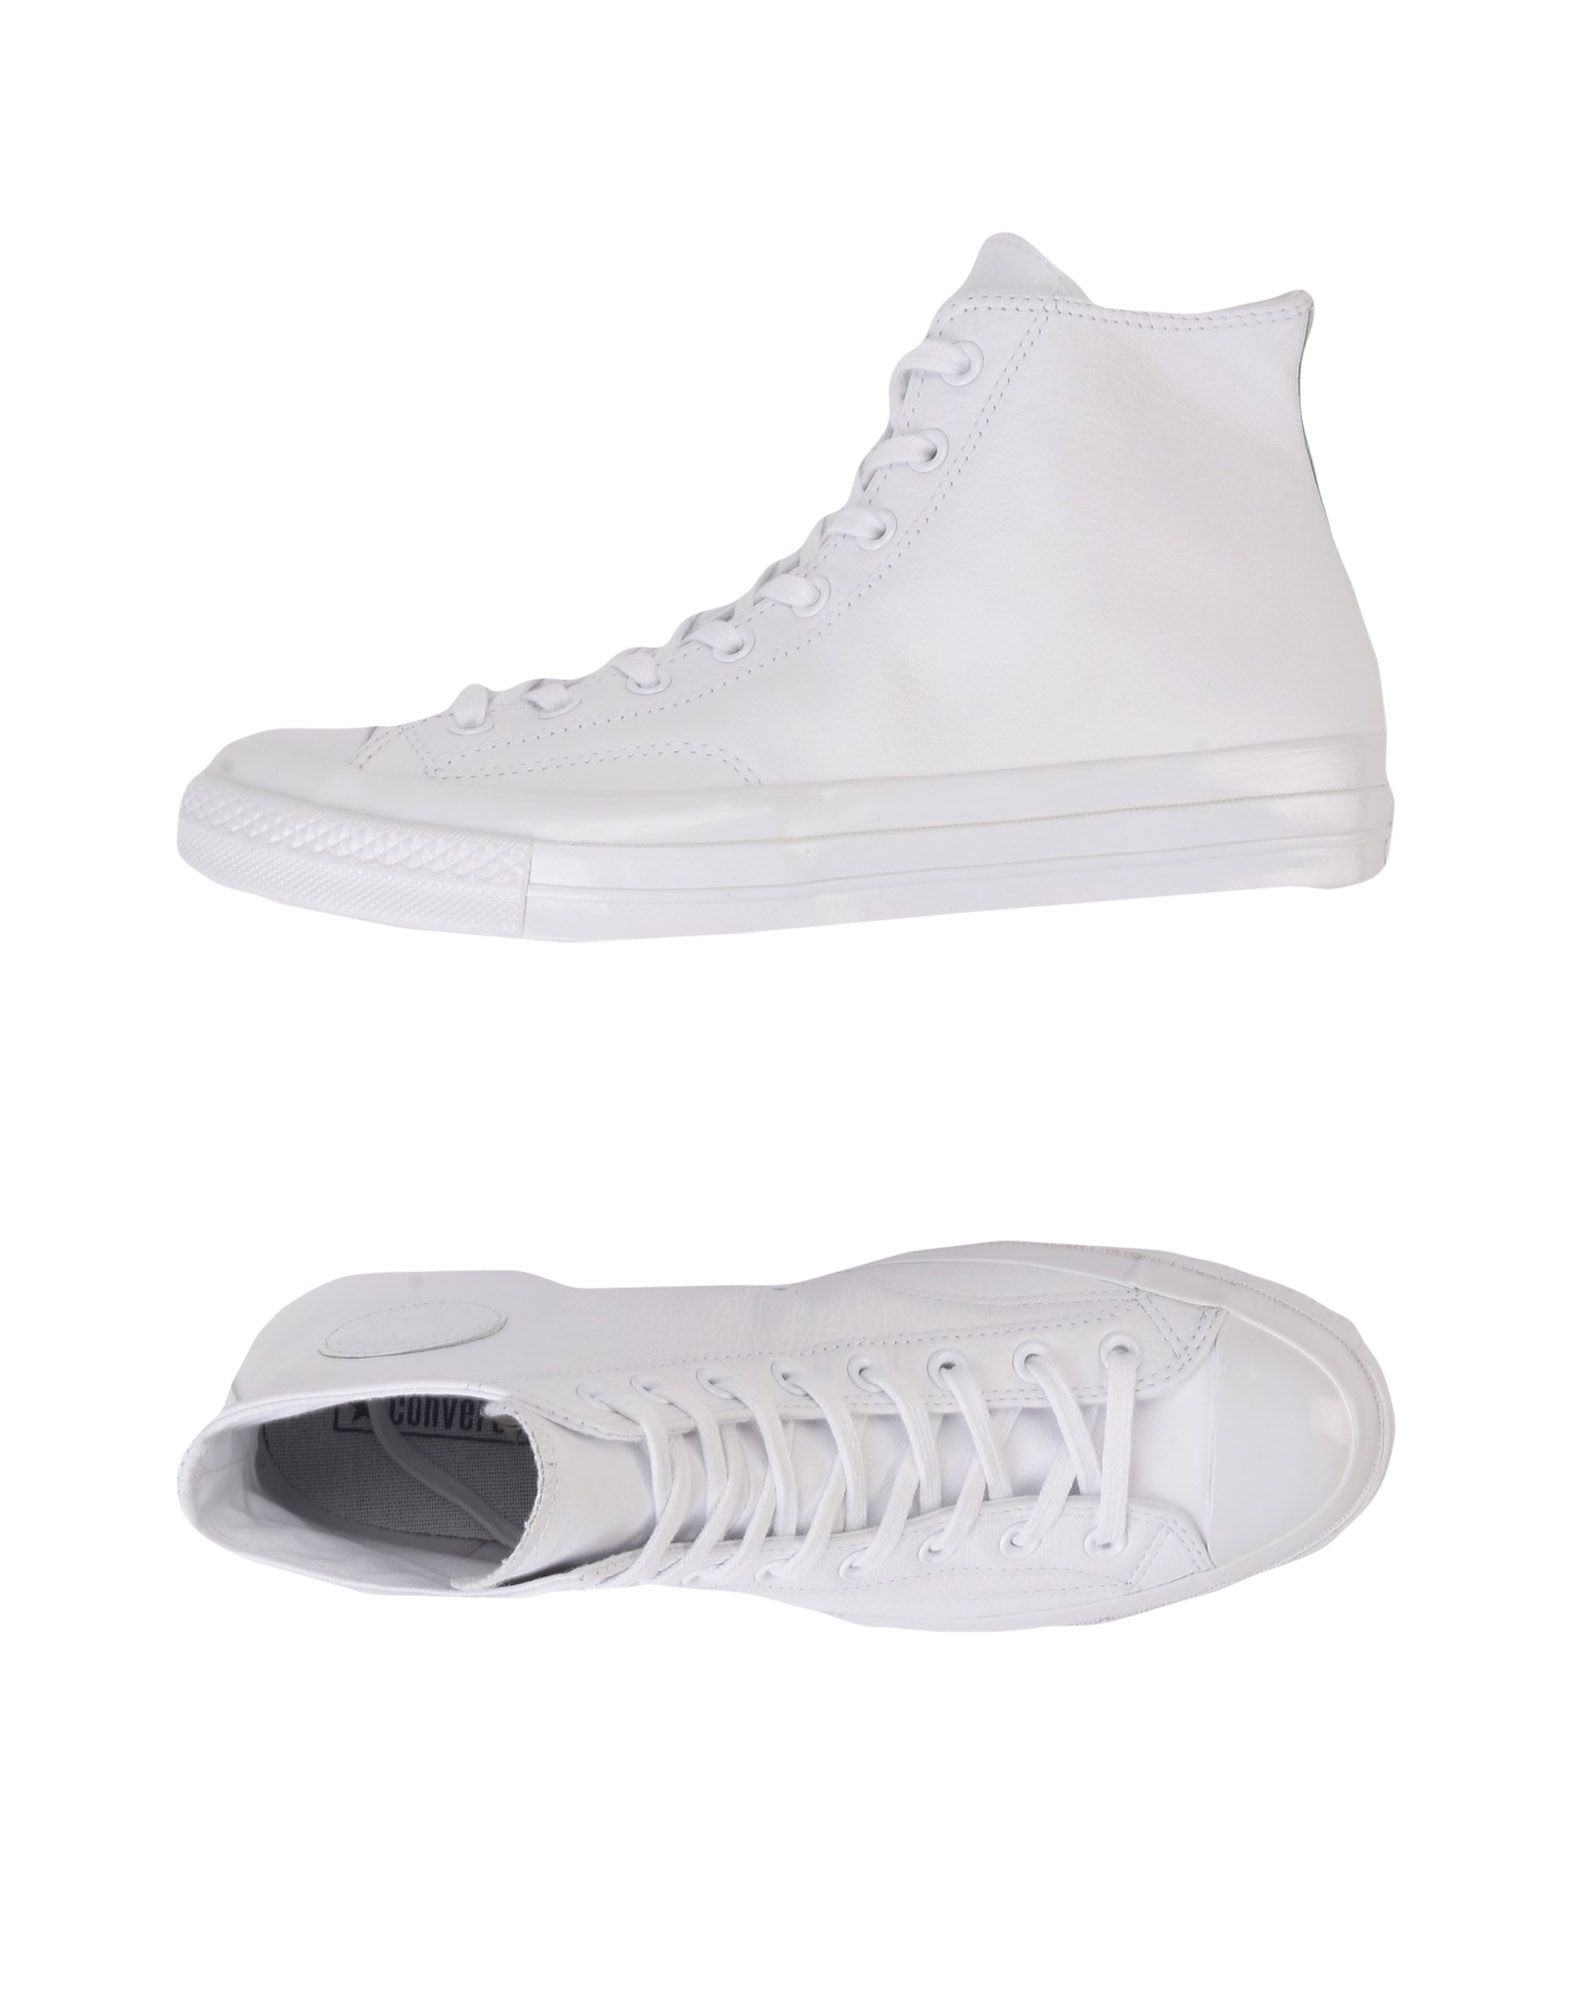 Sneakers Converse All Star Ct As Hi 70'S Leather - Uomo - 11247747RH